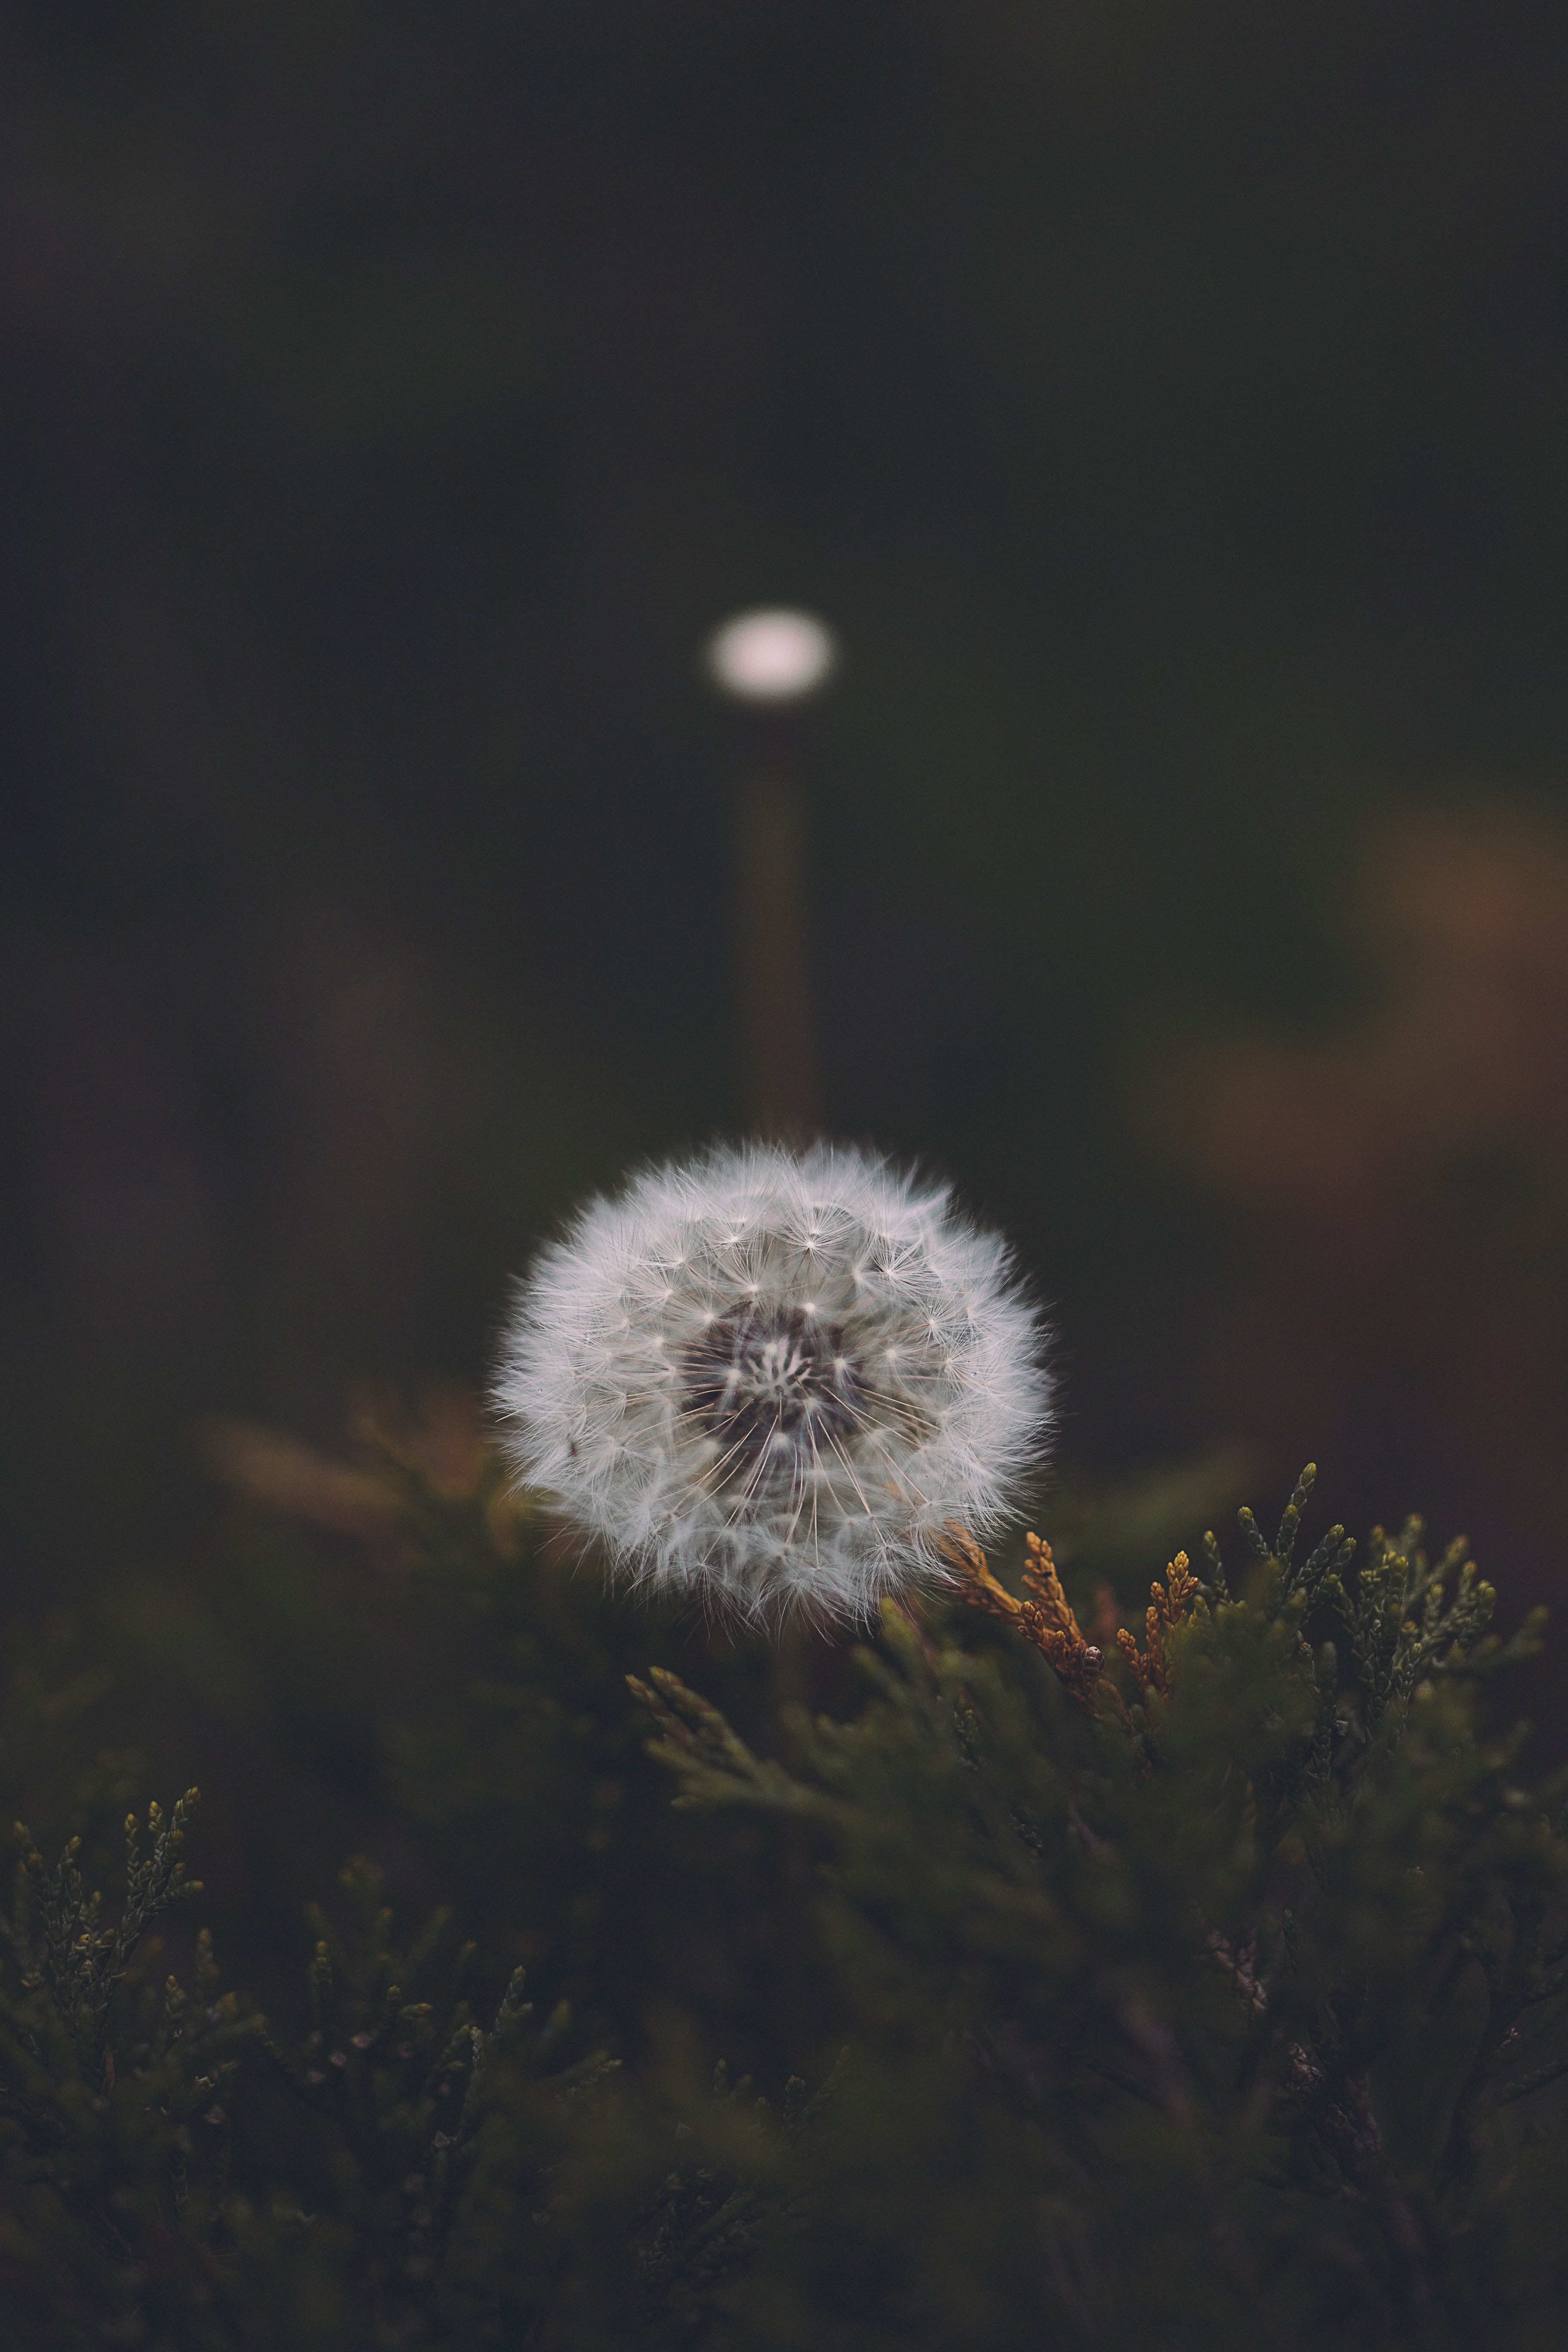 65002 free wallpaper 1080x2340 for phone, download images Flower, Macro, Fluffy, Dandelion, Seeds, Seed 1080x2340 for mobile